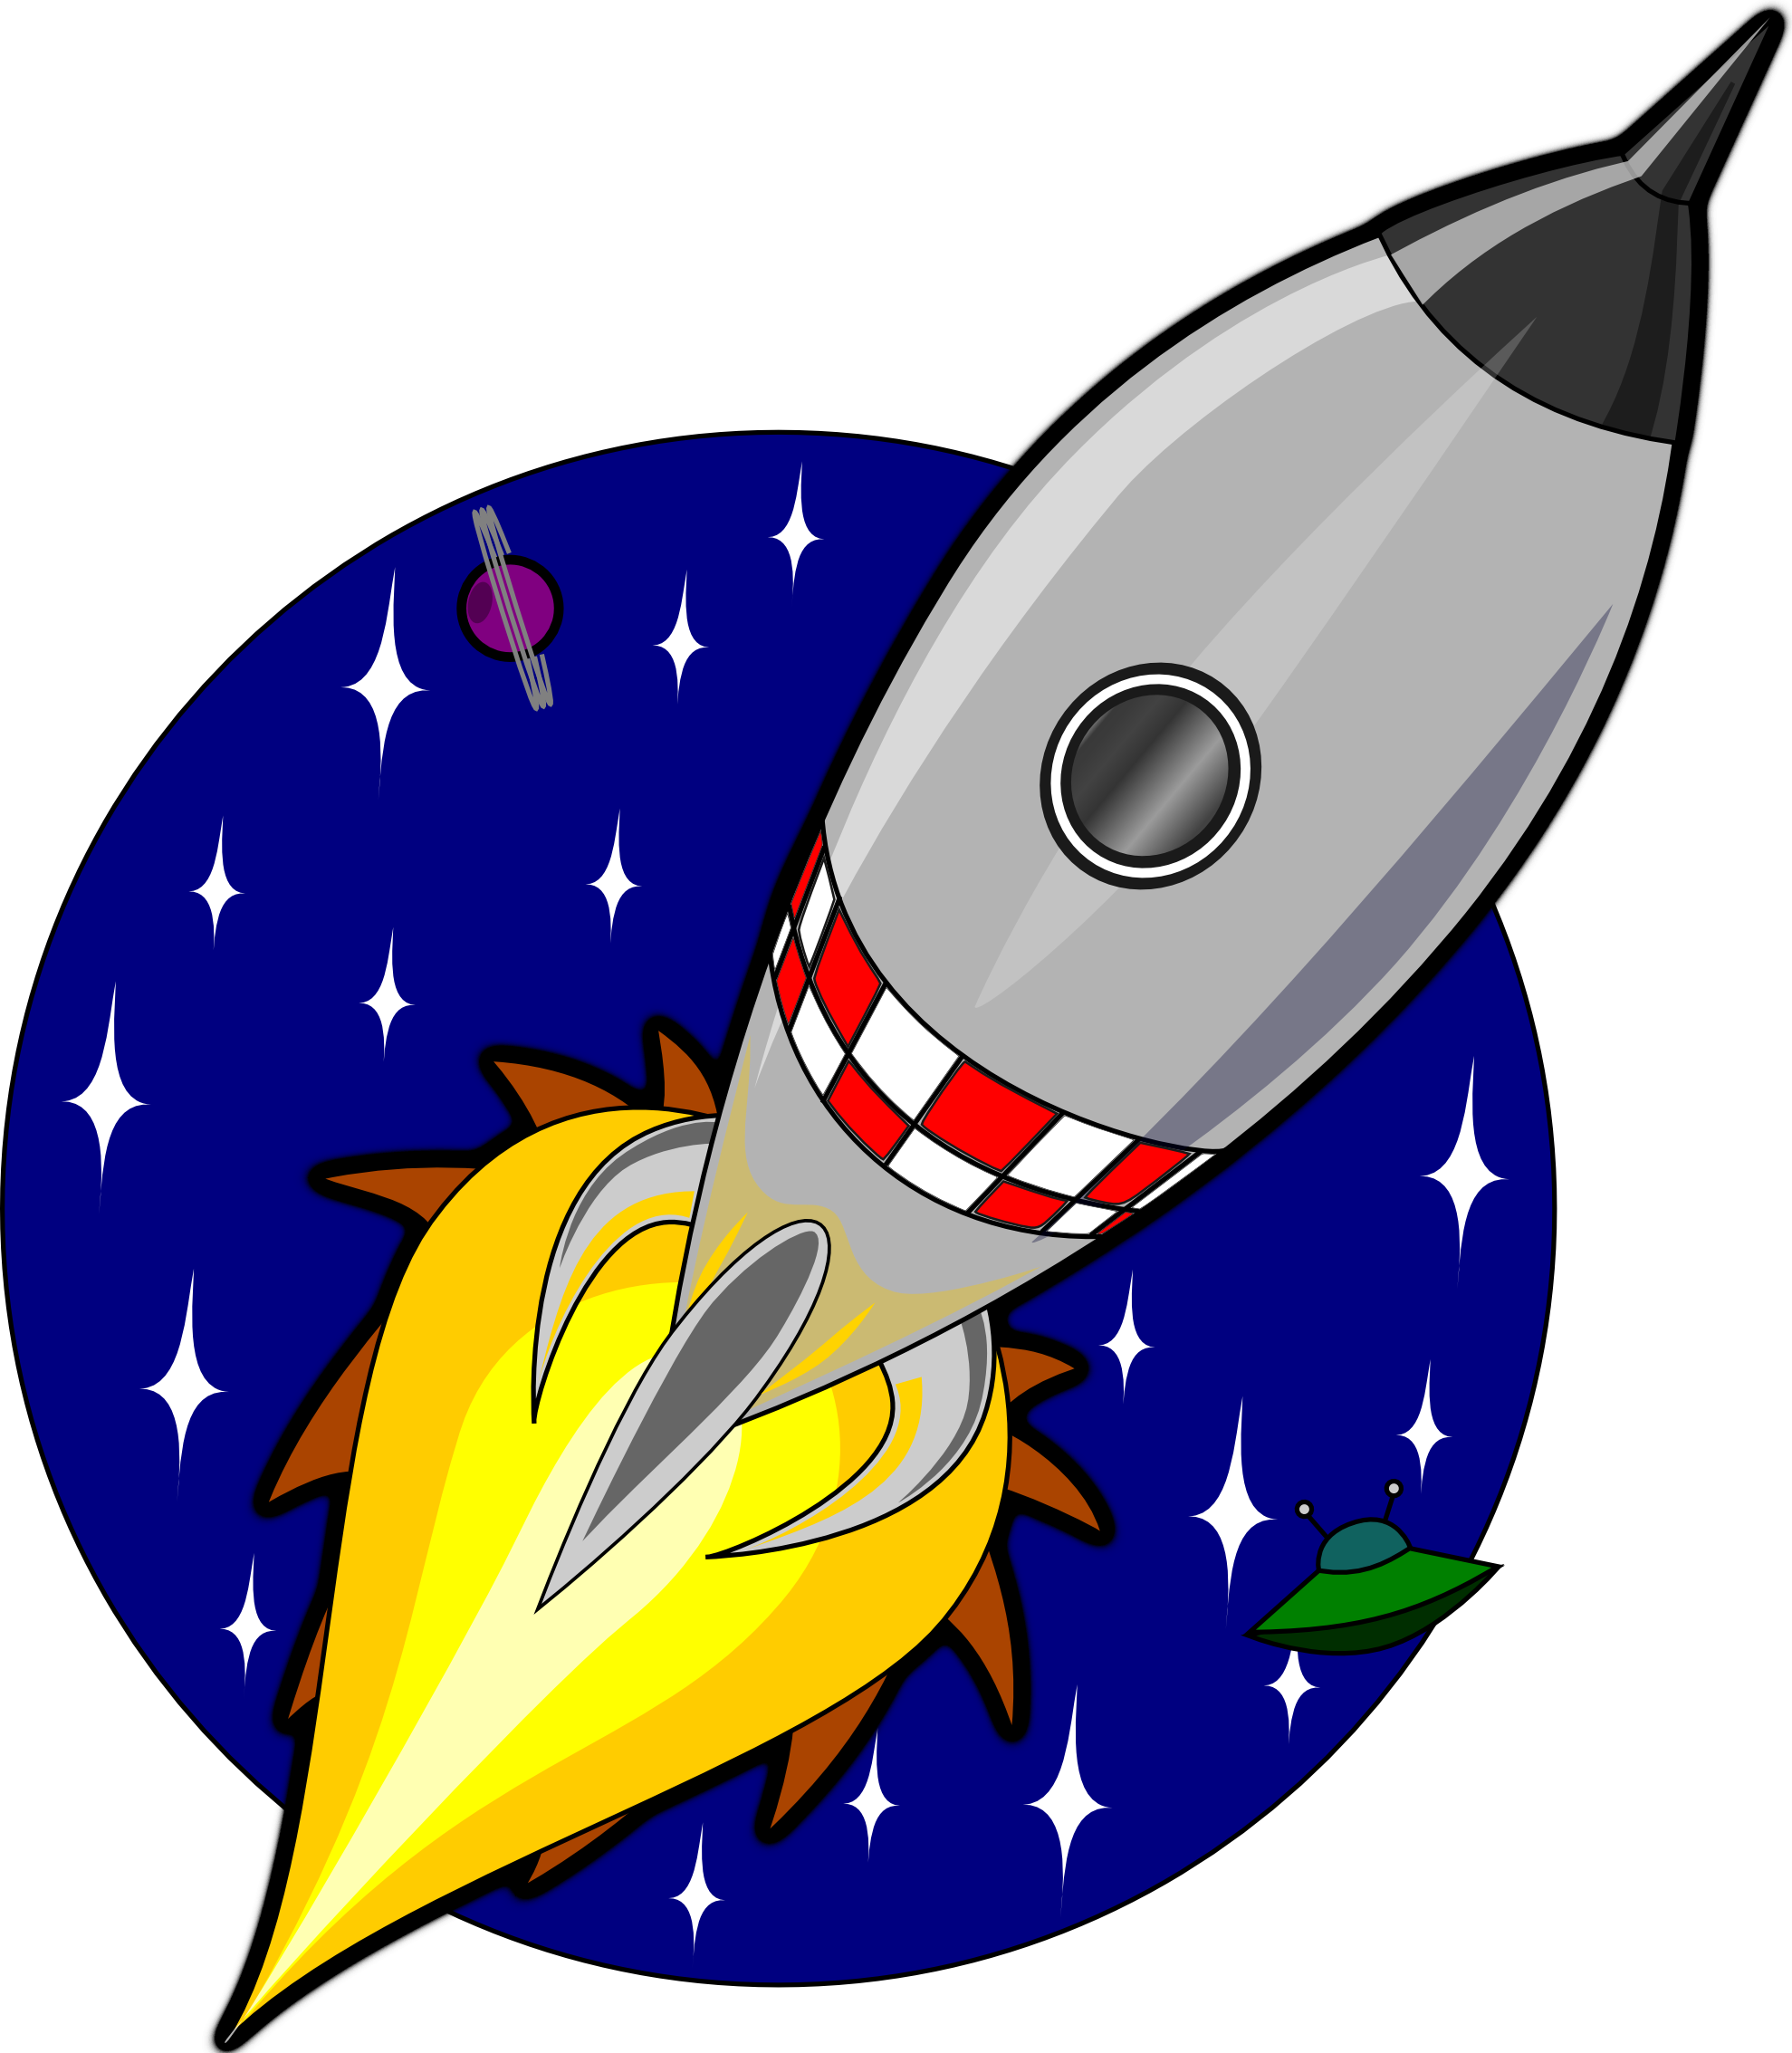 Rocket Clipart images collection for free download.